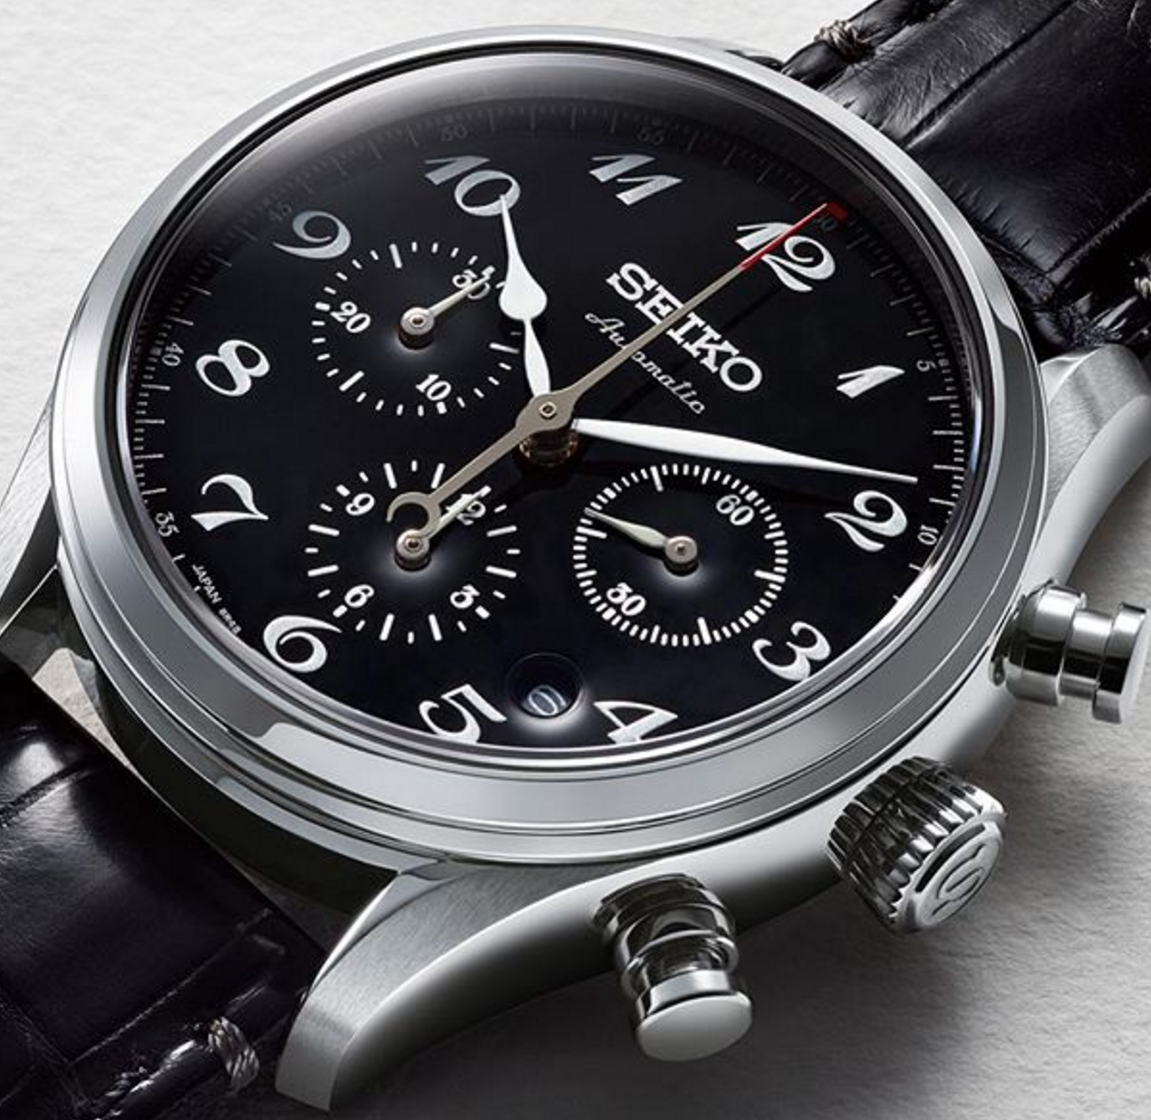 Review of Seiko Presage Chronograph SRQ021J1